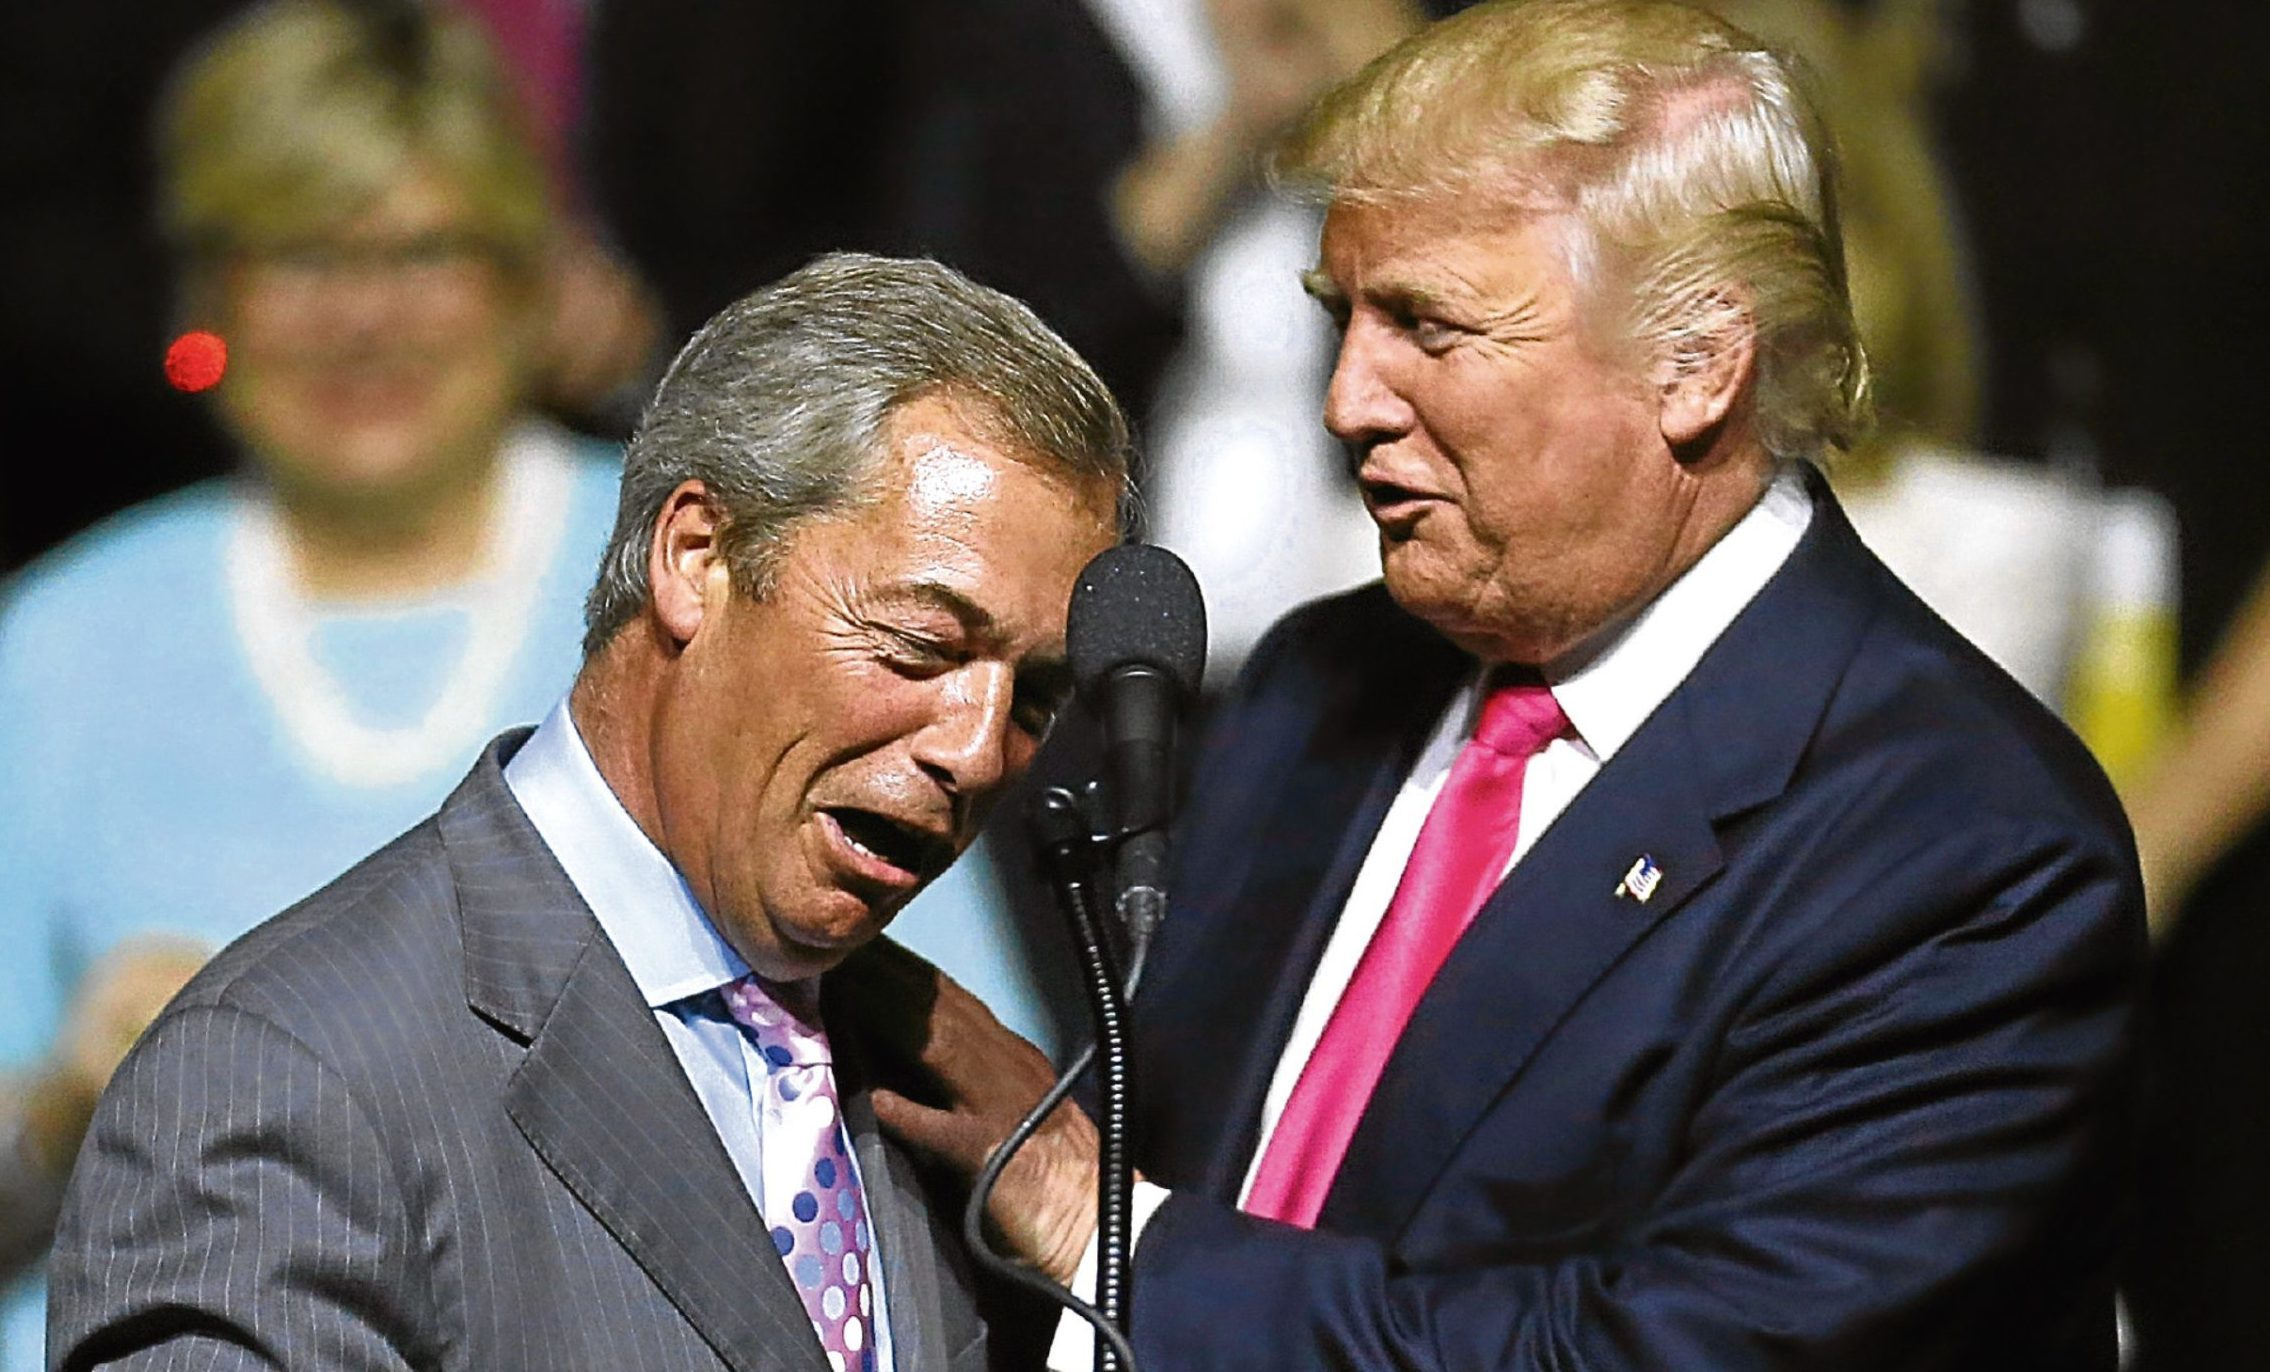 Nigel Farage spoke at a Donald Trump campaign event leading up to the Presidential election.